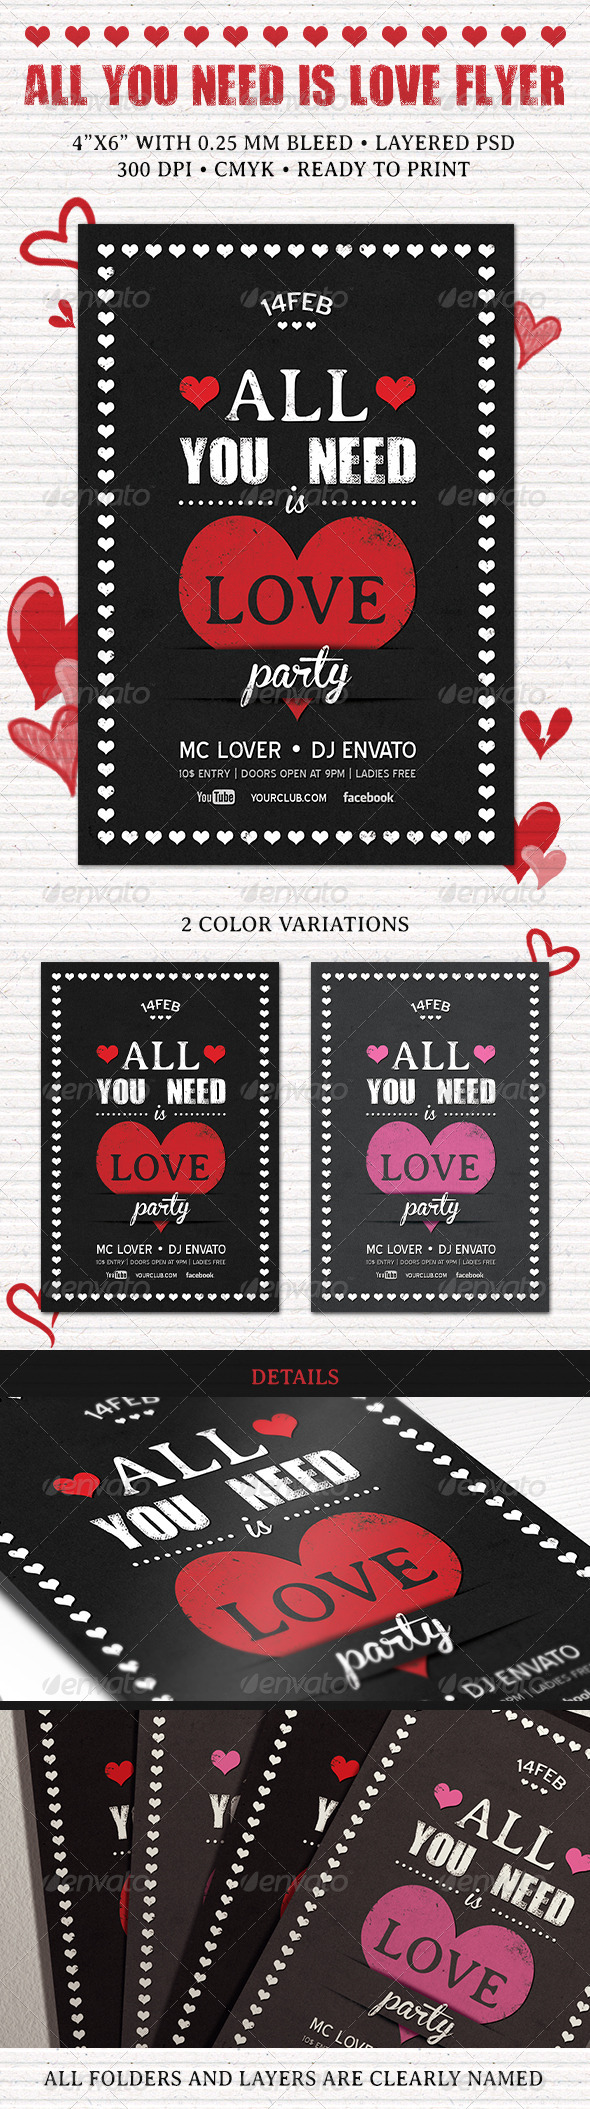 All You Need is Love Flyer - Flyers Print Templates